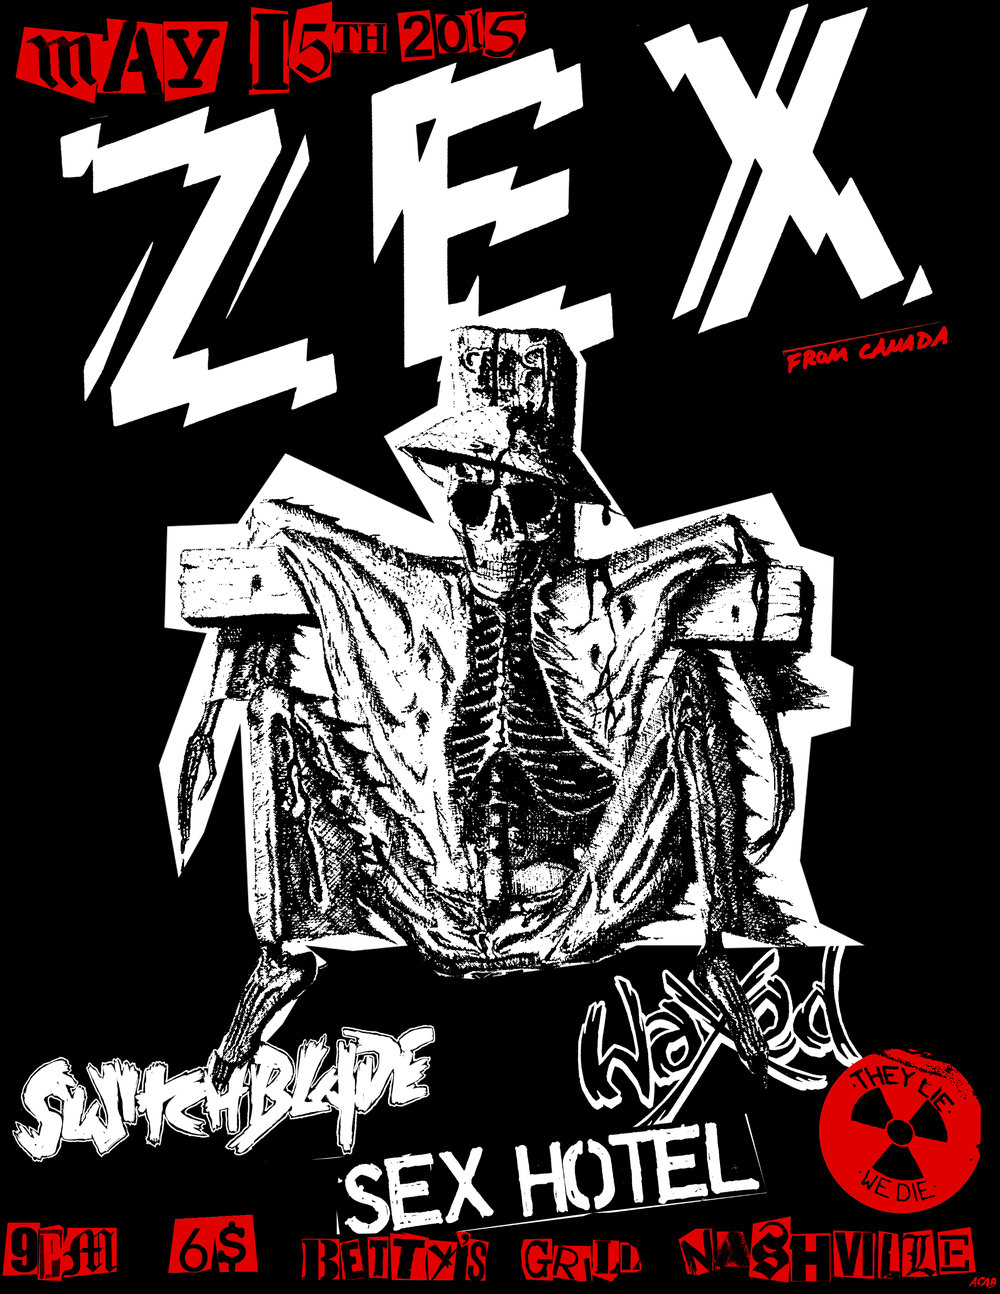 flyer-15.05.15-nashville-zex-red.jpg